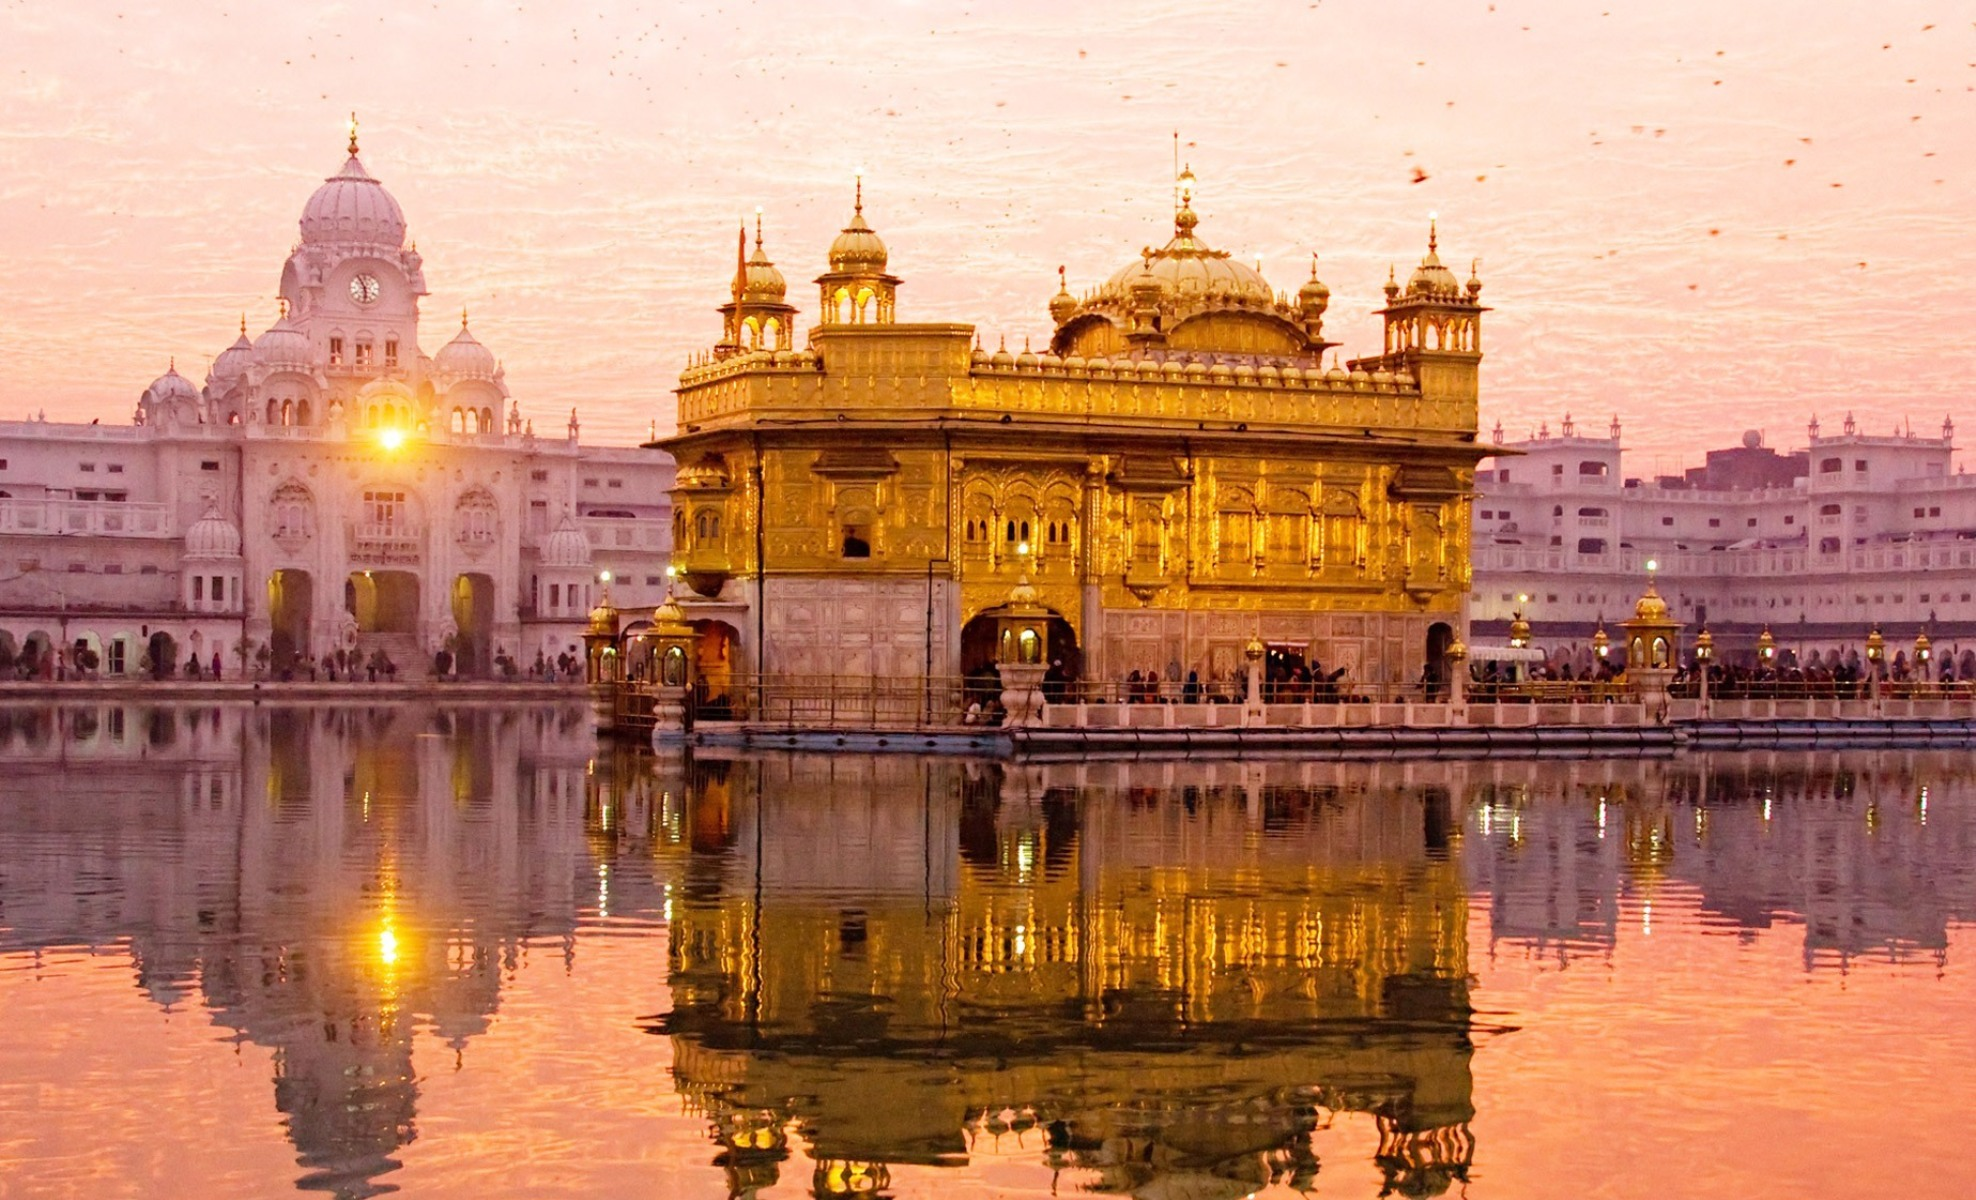 hamandir sahib the golden temple,amritsar,punjab full hd wallpaper